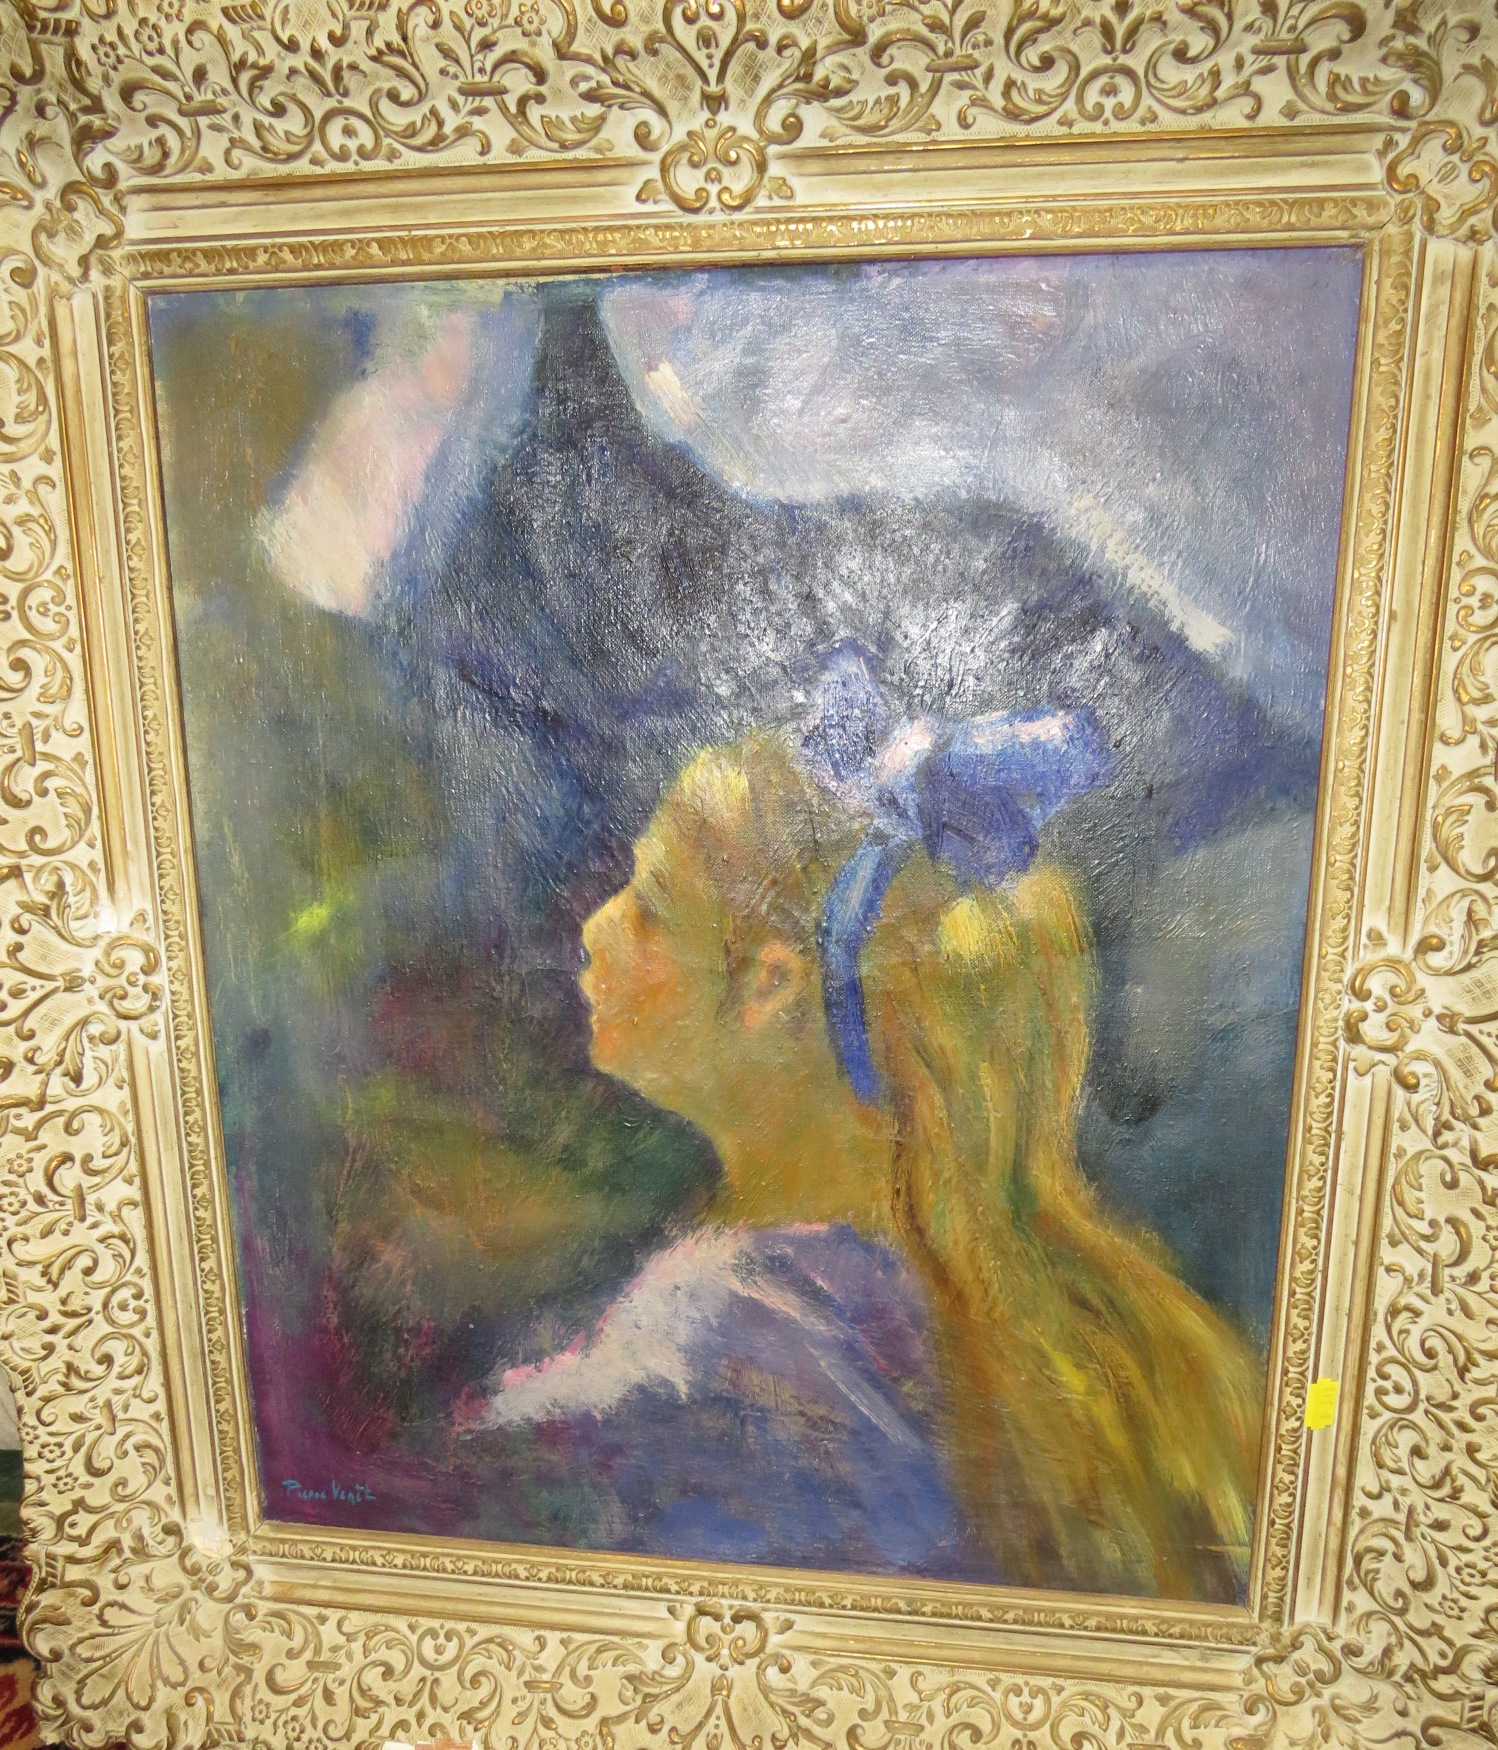 Lot 8 - Portrait of girl with blue bow in her hair, oil on canvas, signed Pierre Venit (?) lower left, (58cm